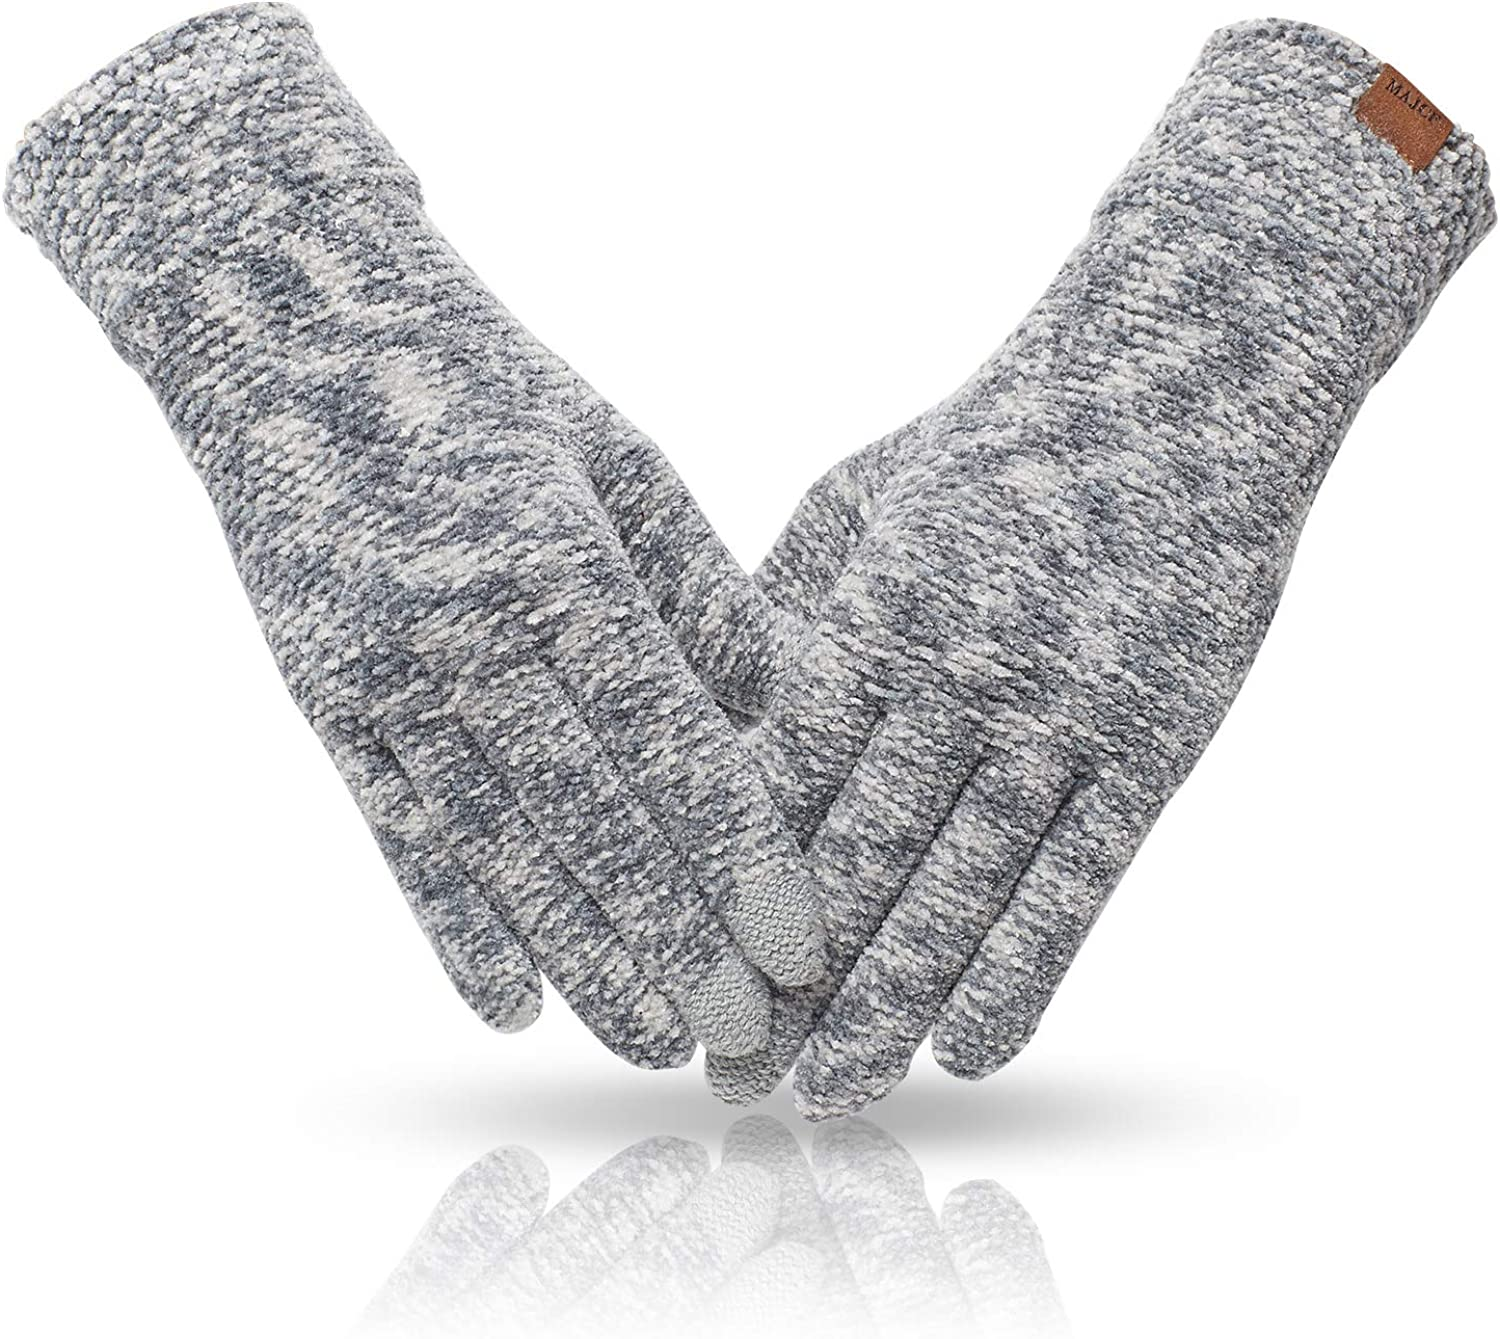 MAJCF Winter Gloves for Women Cold Weather,Warm Touch Screen Gloves Chenille,Elastic Cuff Thermal Gloves for Running Driving